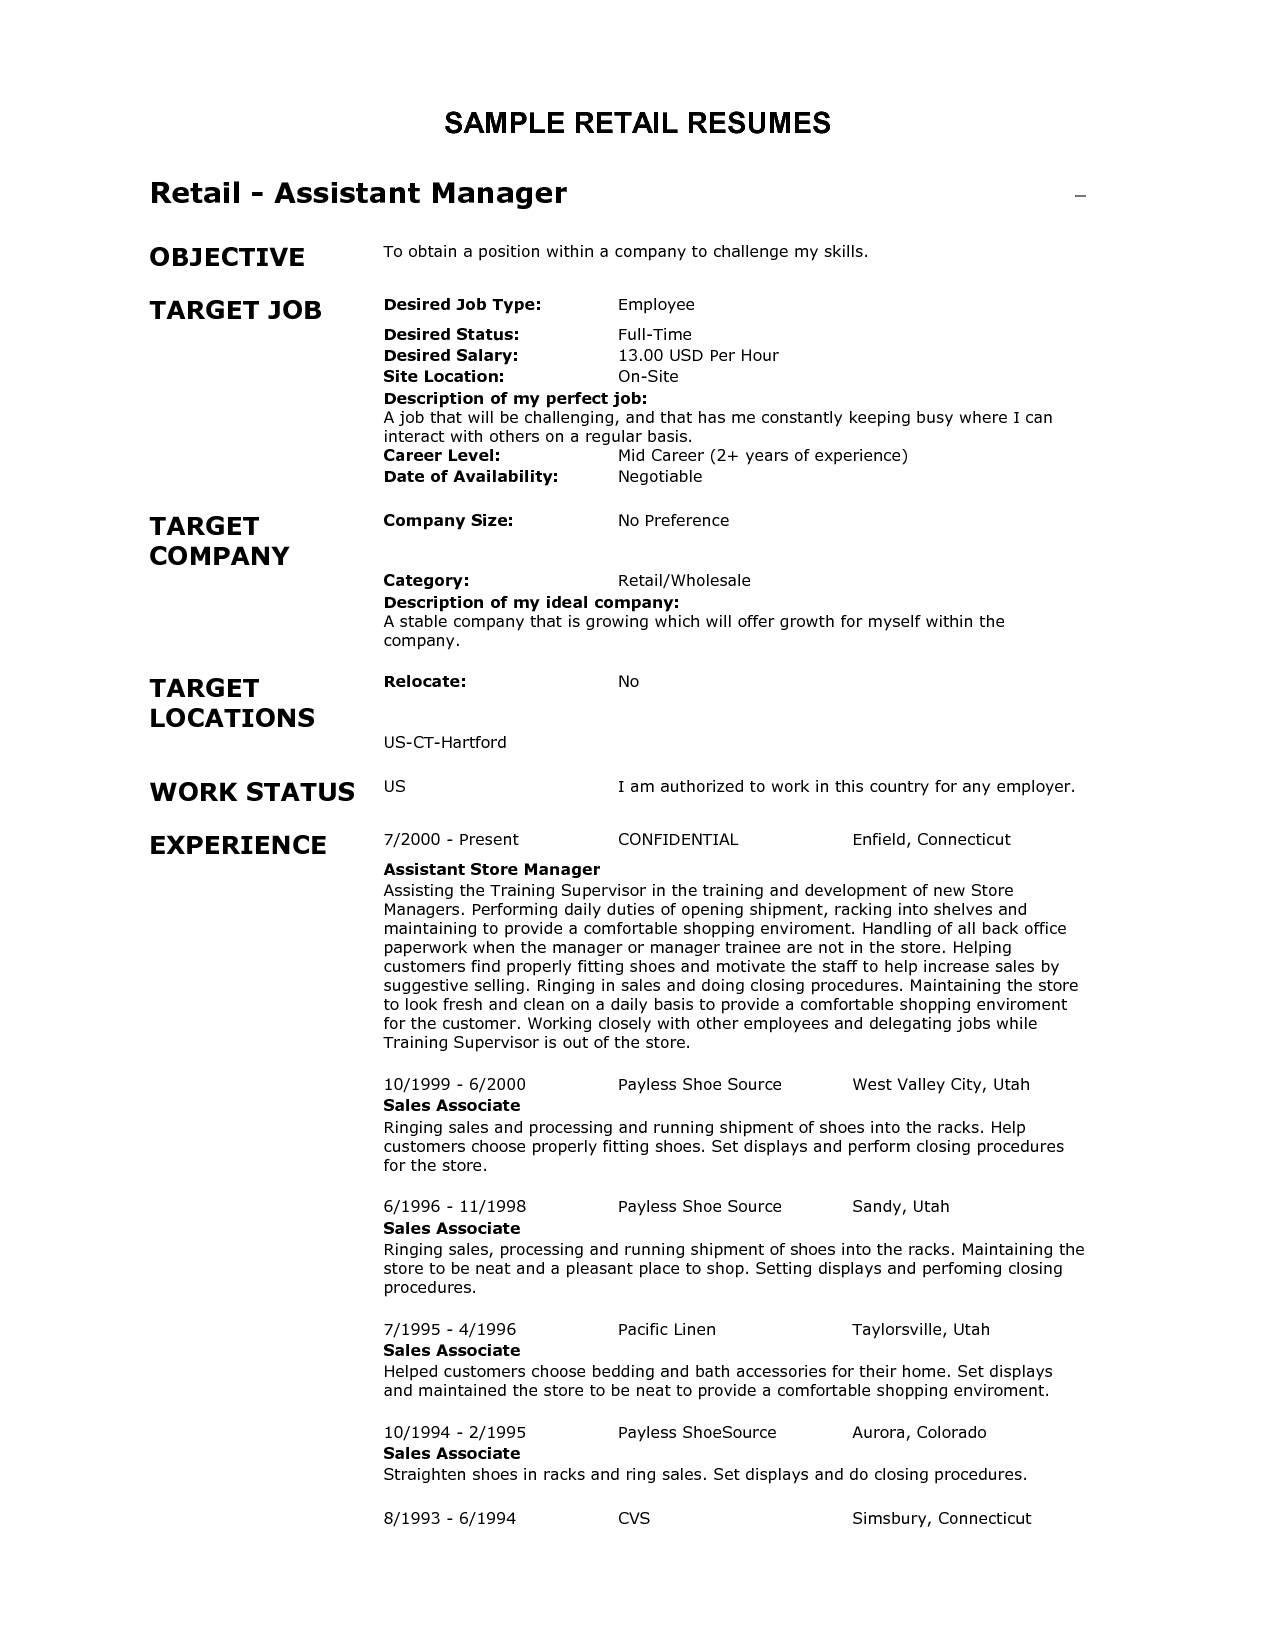 Customer Service Resume Template Australia